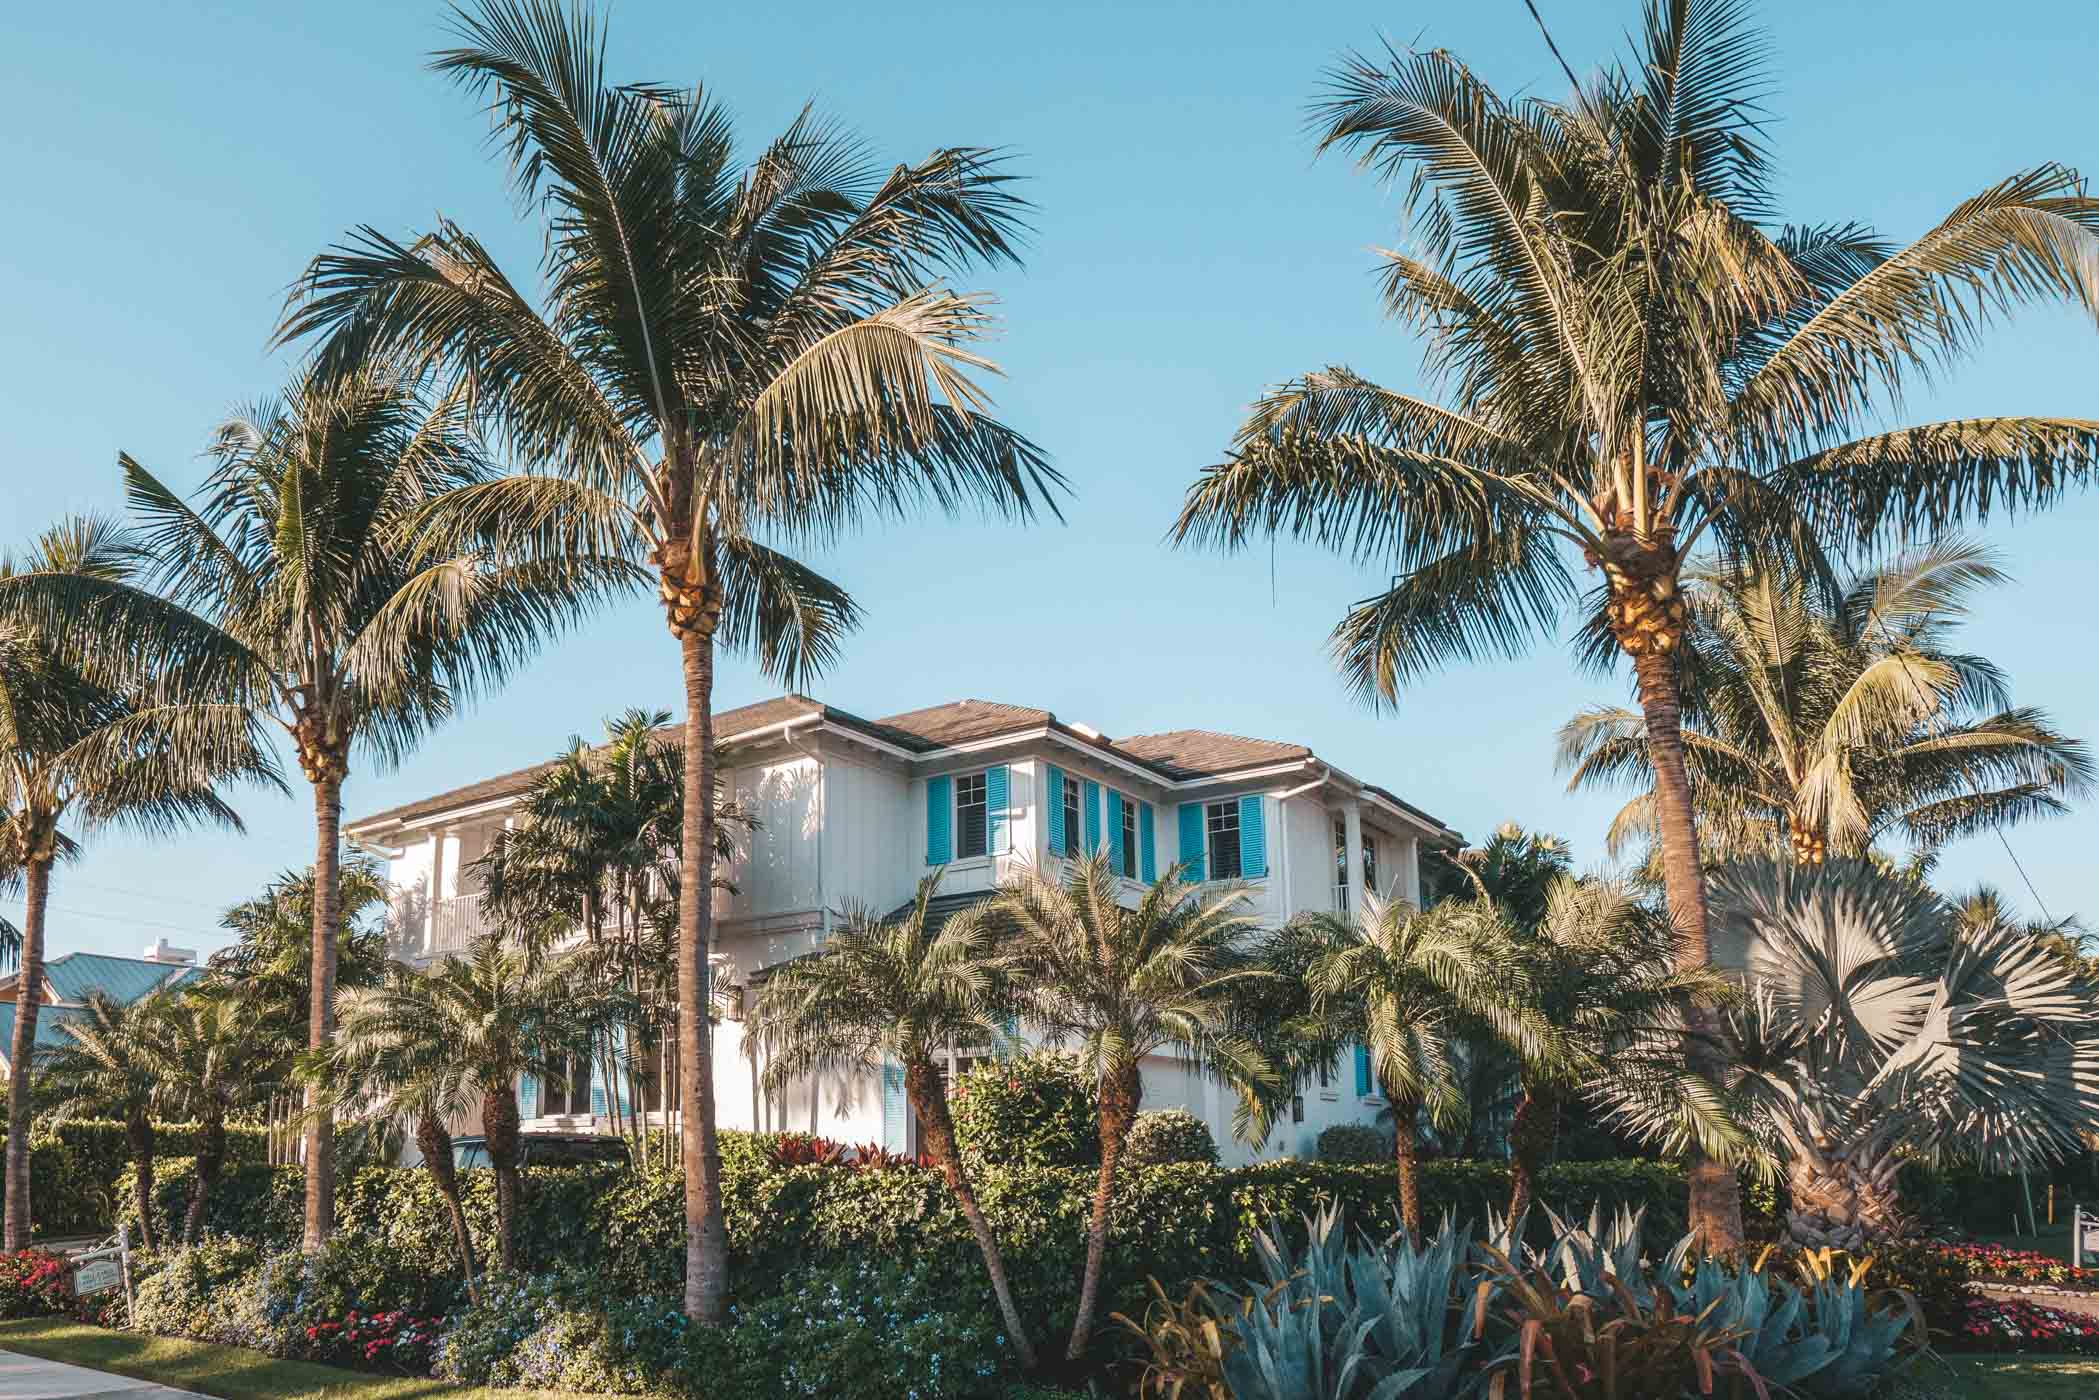 The ultimate guide of things to do in Naples Florida. Including where to shop, where to stay, and what to eat. #Florida #Naples #girlstrip